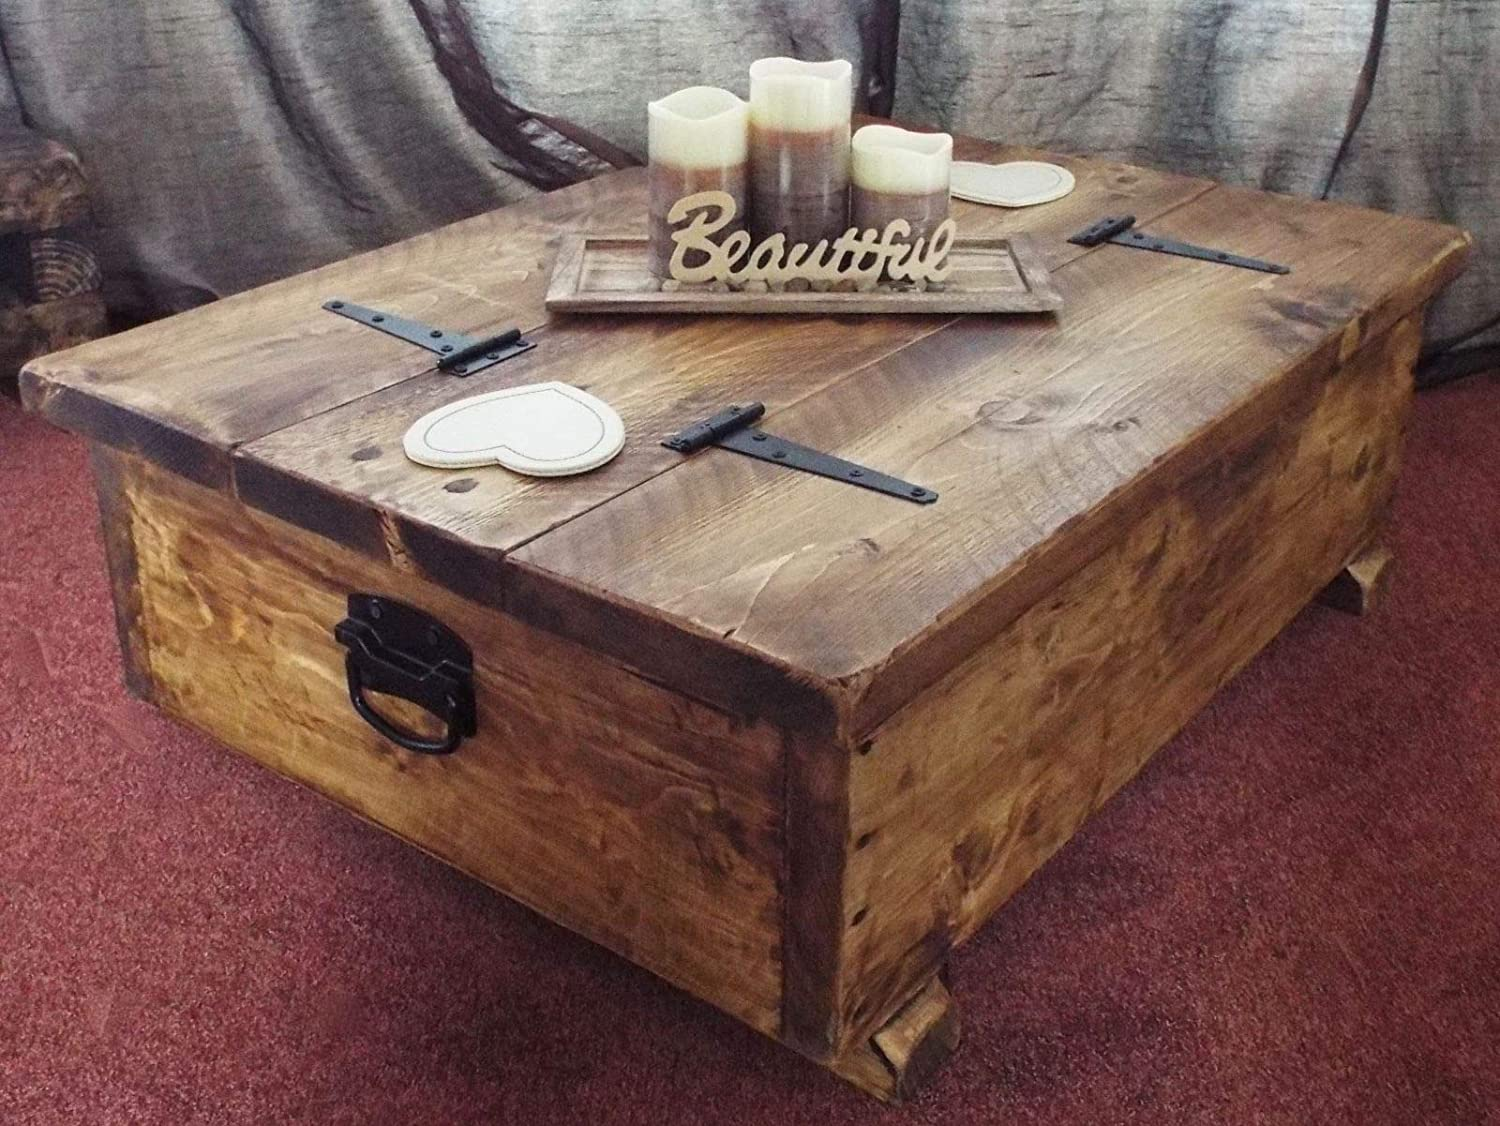 new products 46c4f 95efd Coffee Table Storage Box Wooden Plank Rustic Blanket Chest Toy